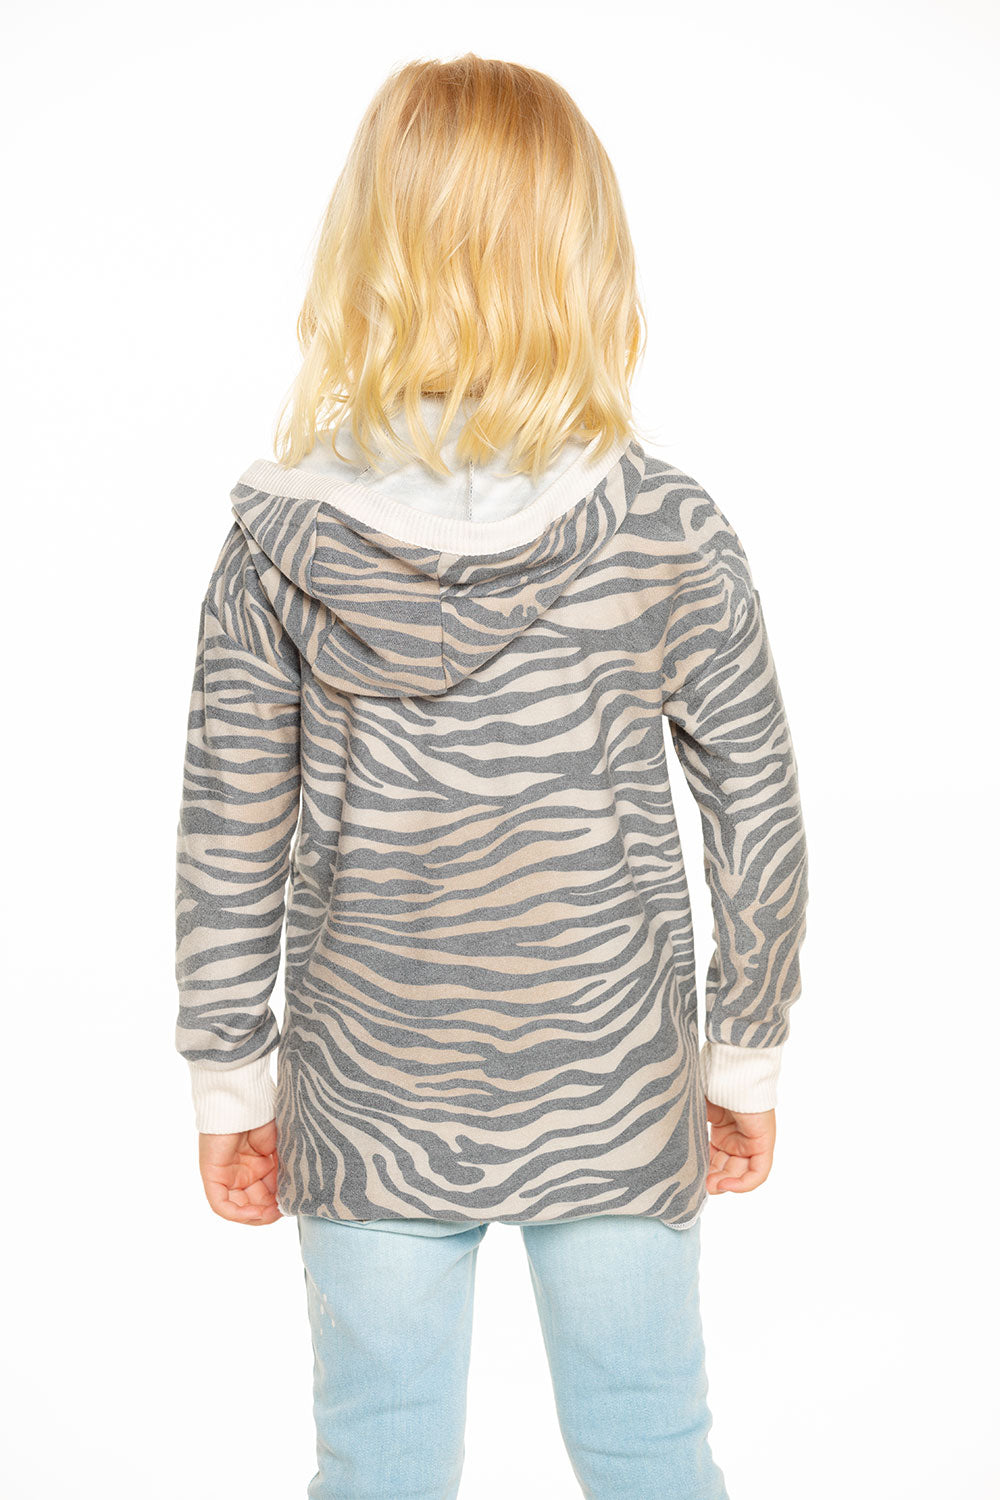 Cozy Knit Hi Lo Pullover Hoodie in Zebra Stripe [product_type] chaserbrand4.myshopify.com